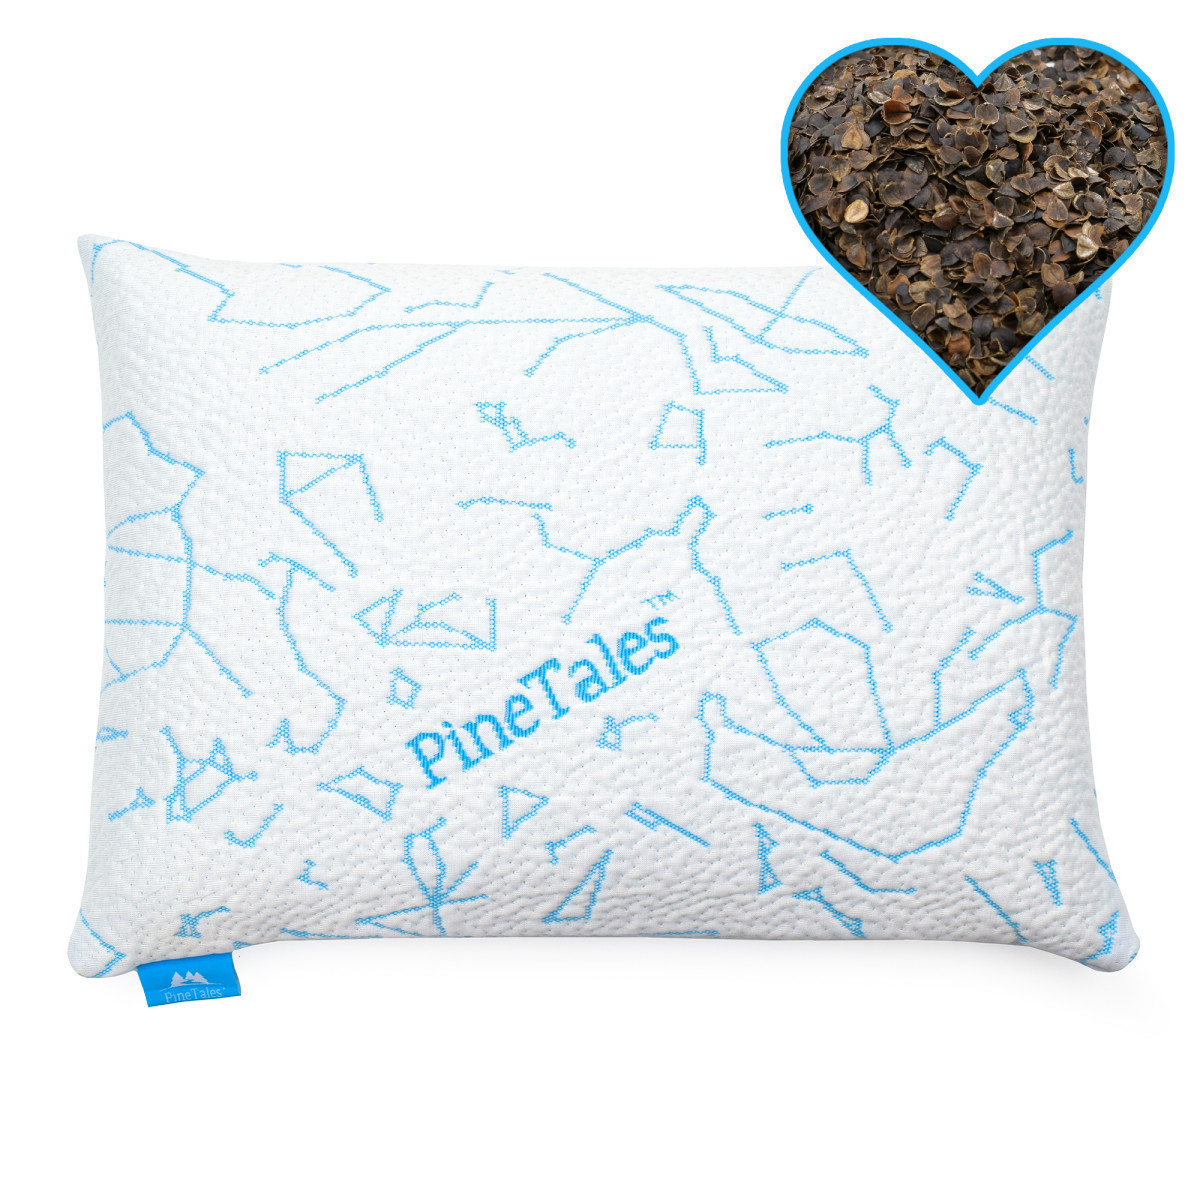 Have You Heard About The Cooling Designer Buckwheat Pillow From PineTales?